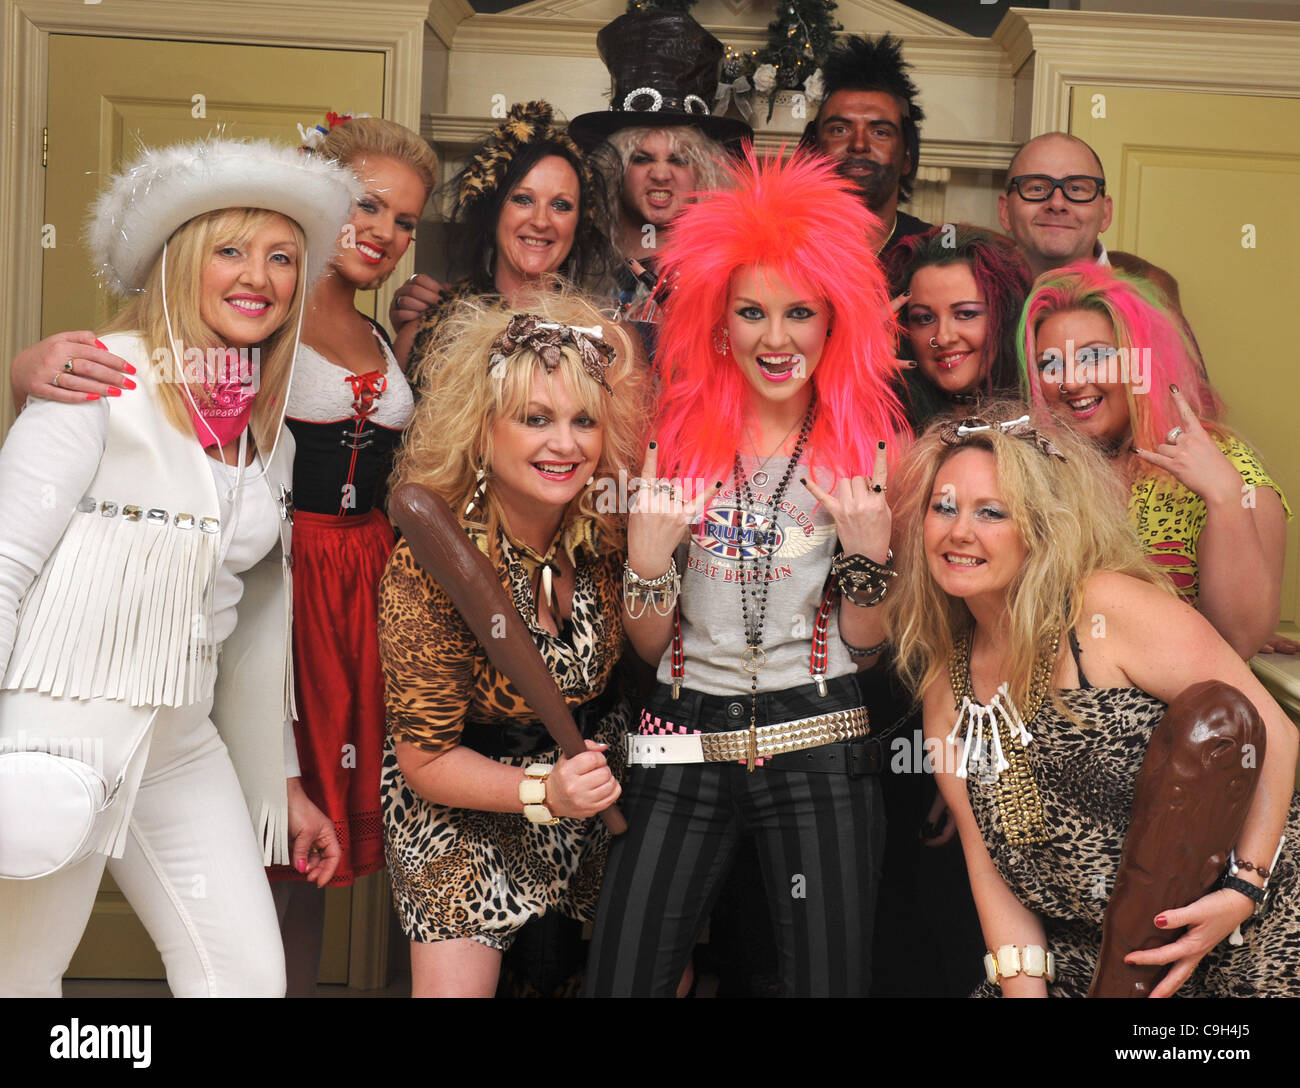 UK, X-Factor winning band member Perrie Edwards of Little Mix as a red haired Rock Chick, her fancy dress outfit - Stock Image